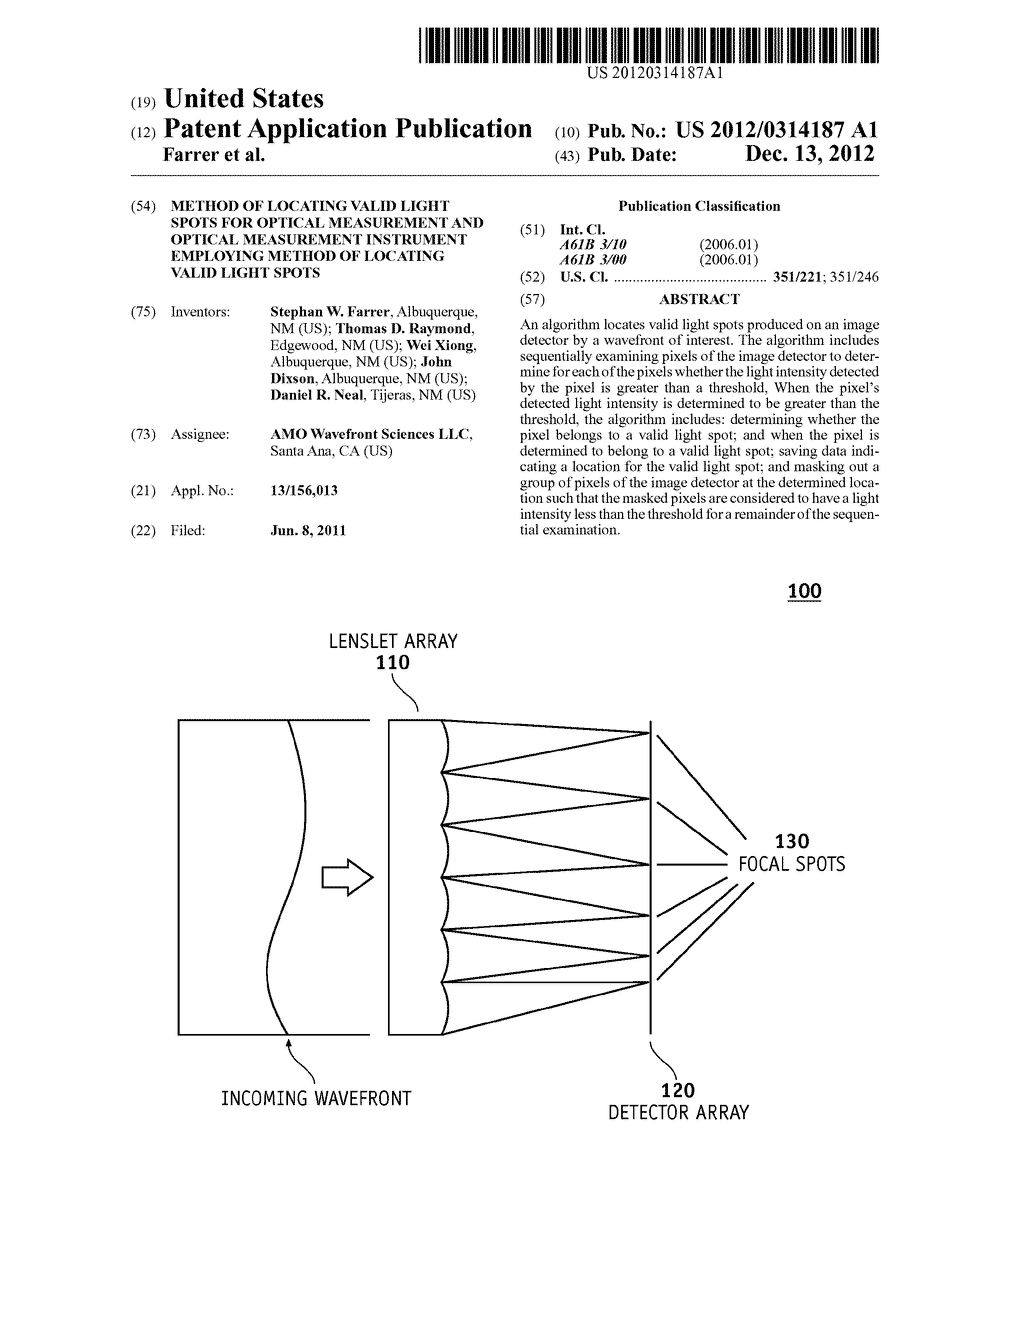 METHOD OF LOCATING VALID LIGHT SPOTS FOR OPTICAL MEASUREMENT AND OPTICAL     MEASUREMENT INSTRUMENT EMPLOYING METHOD OF LOCATING VALID LIGHT SPOTS - diagram, schematic, and image 01